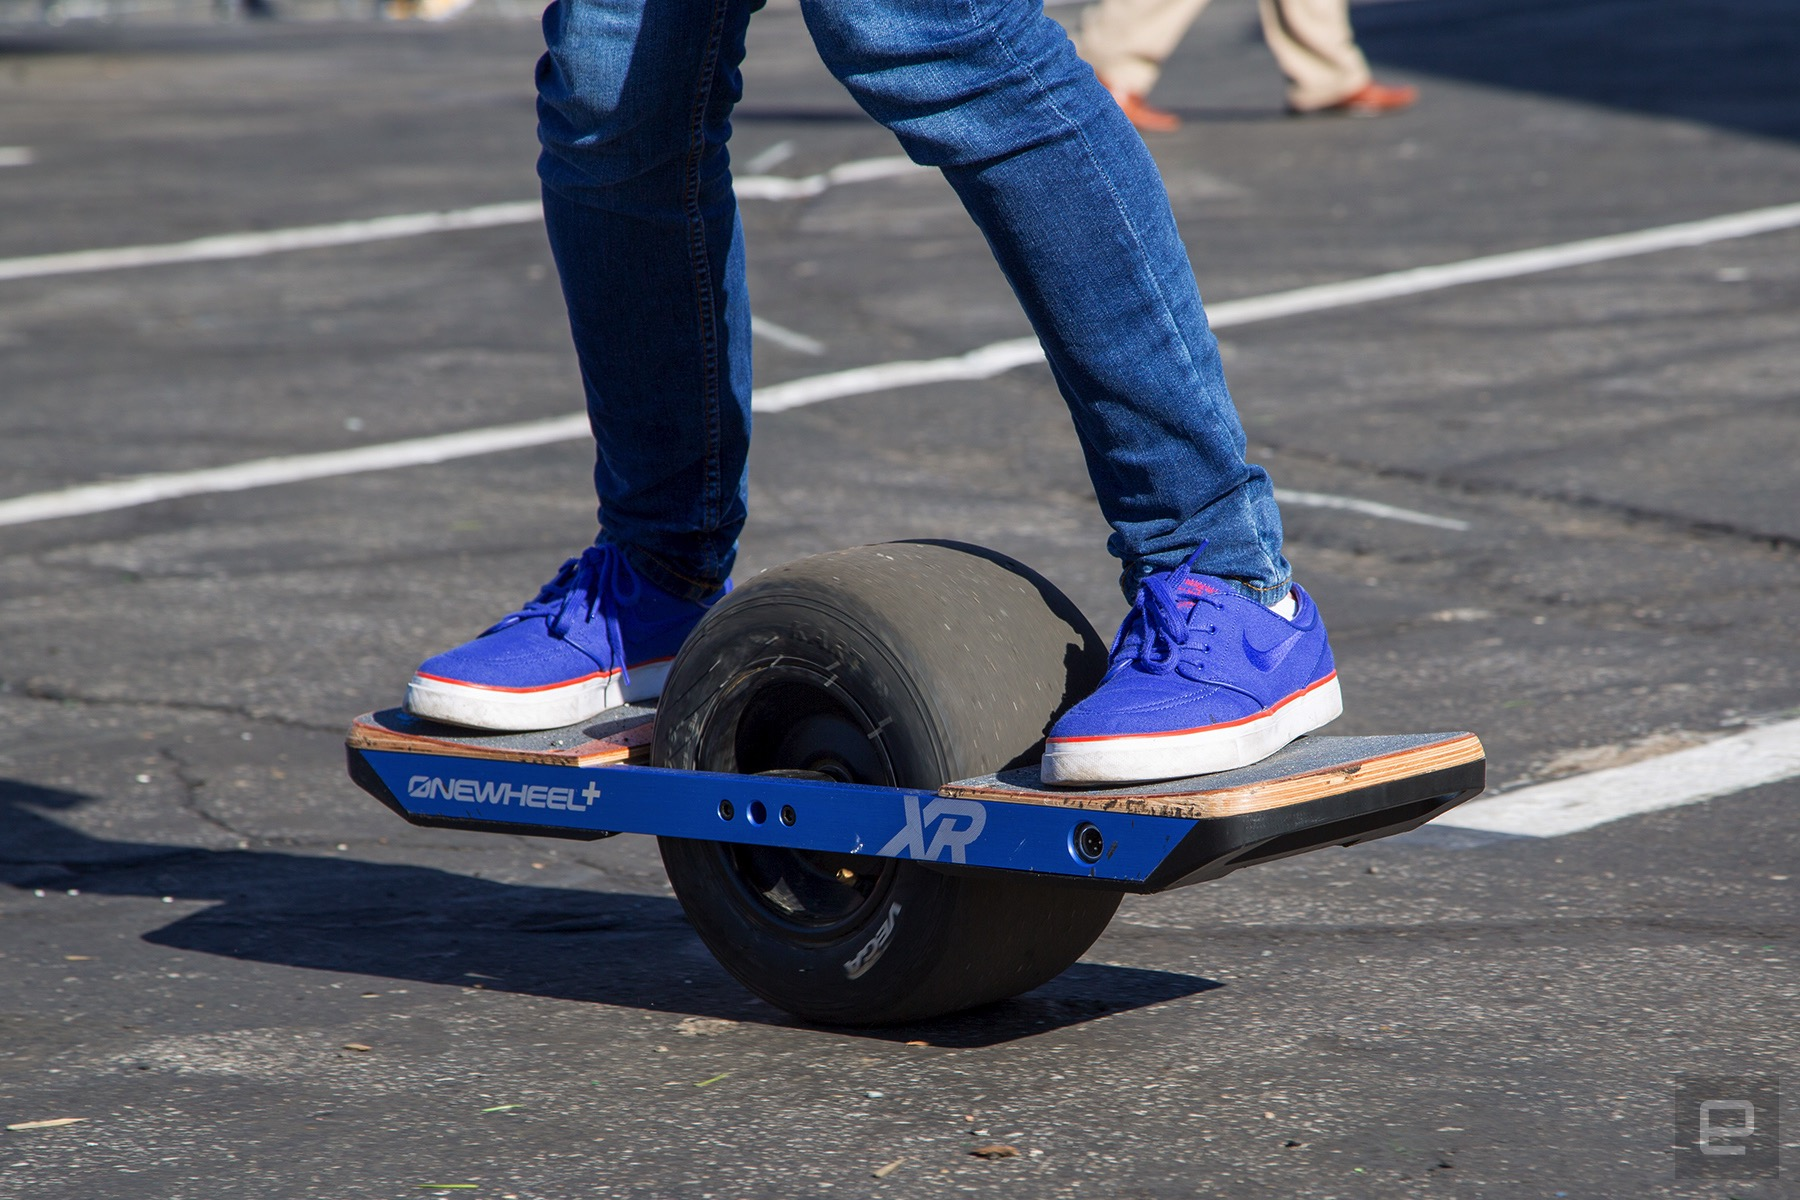 The Onewheel Has Always Been An Exhilarating Ride When You Step Onto Board And Lean Down On Nose There S A Rush Of Adrenaline As Wait For